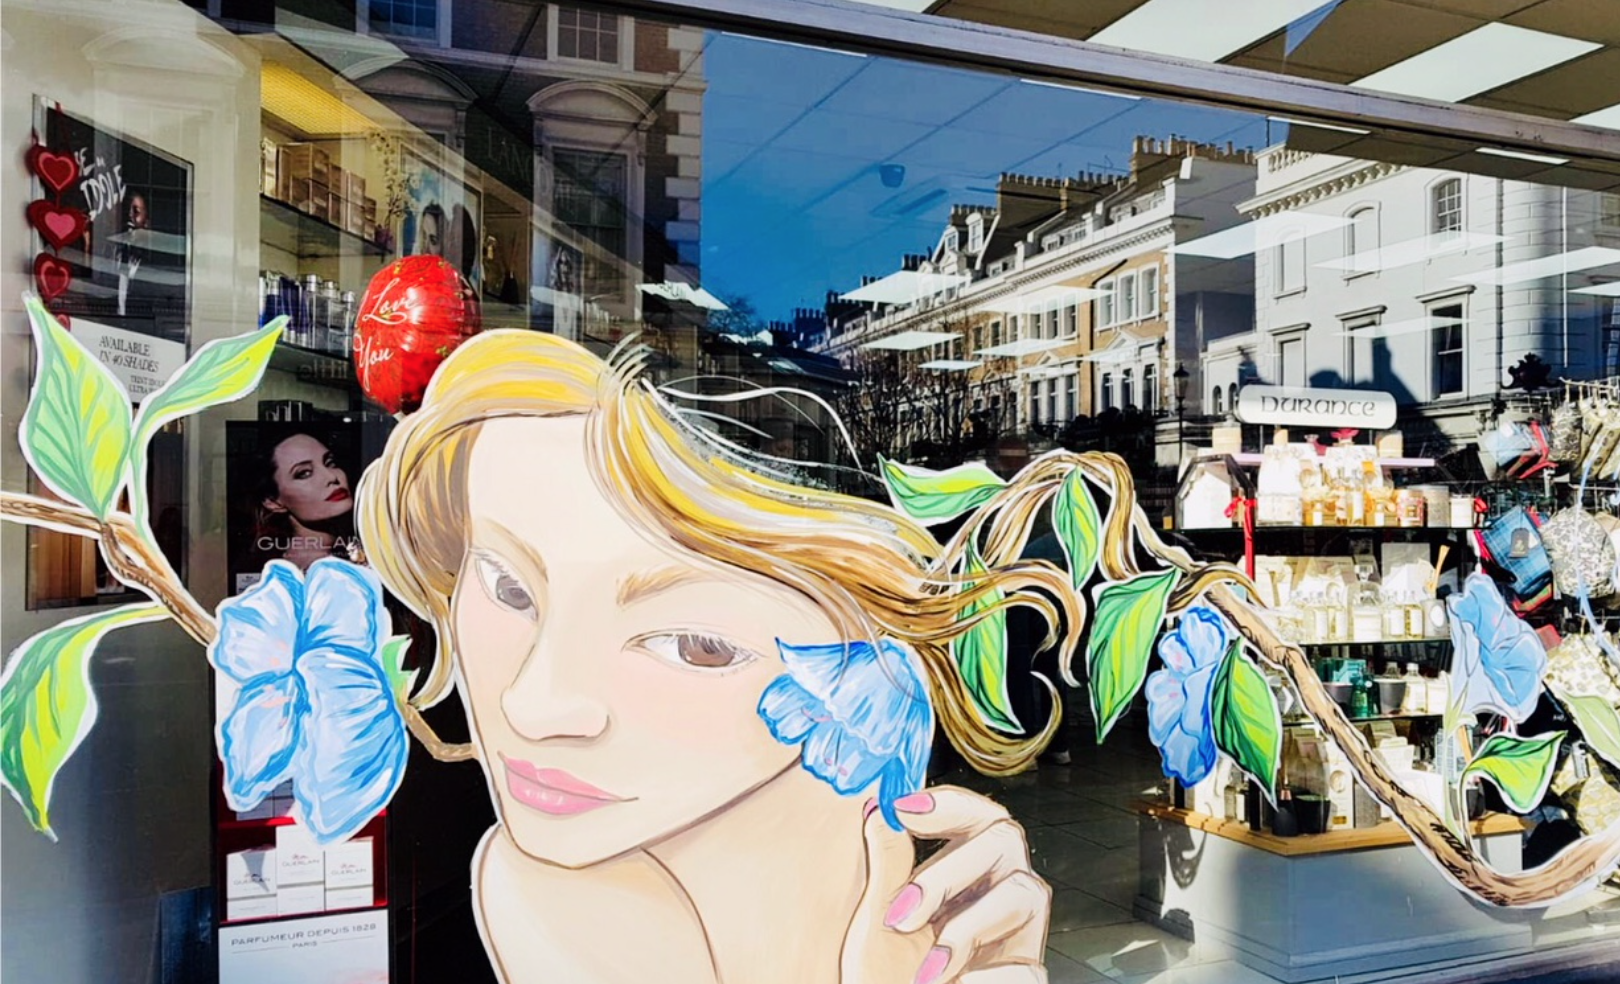 How a Wall Artist and Window Art can Help a New Business